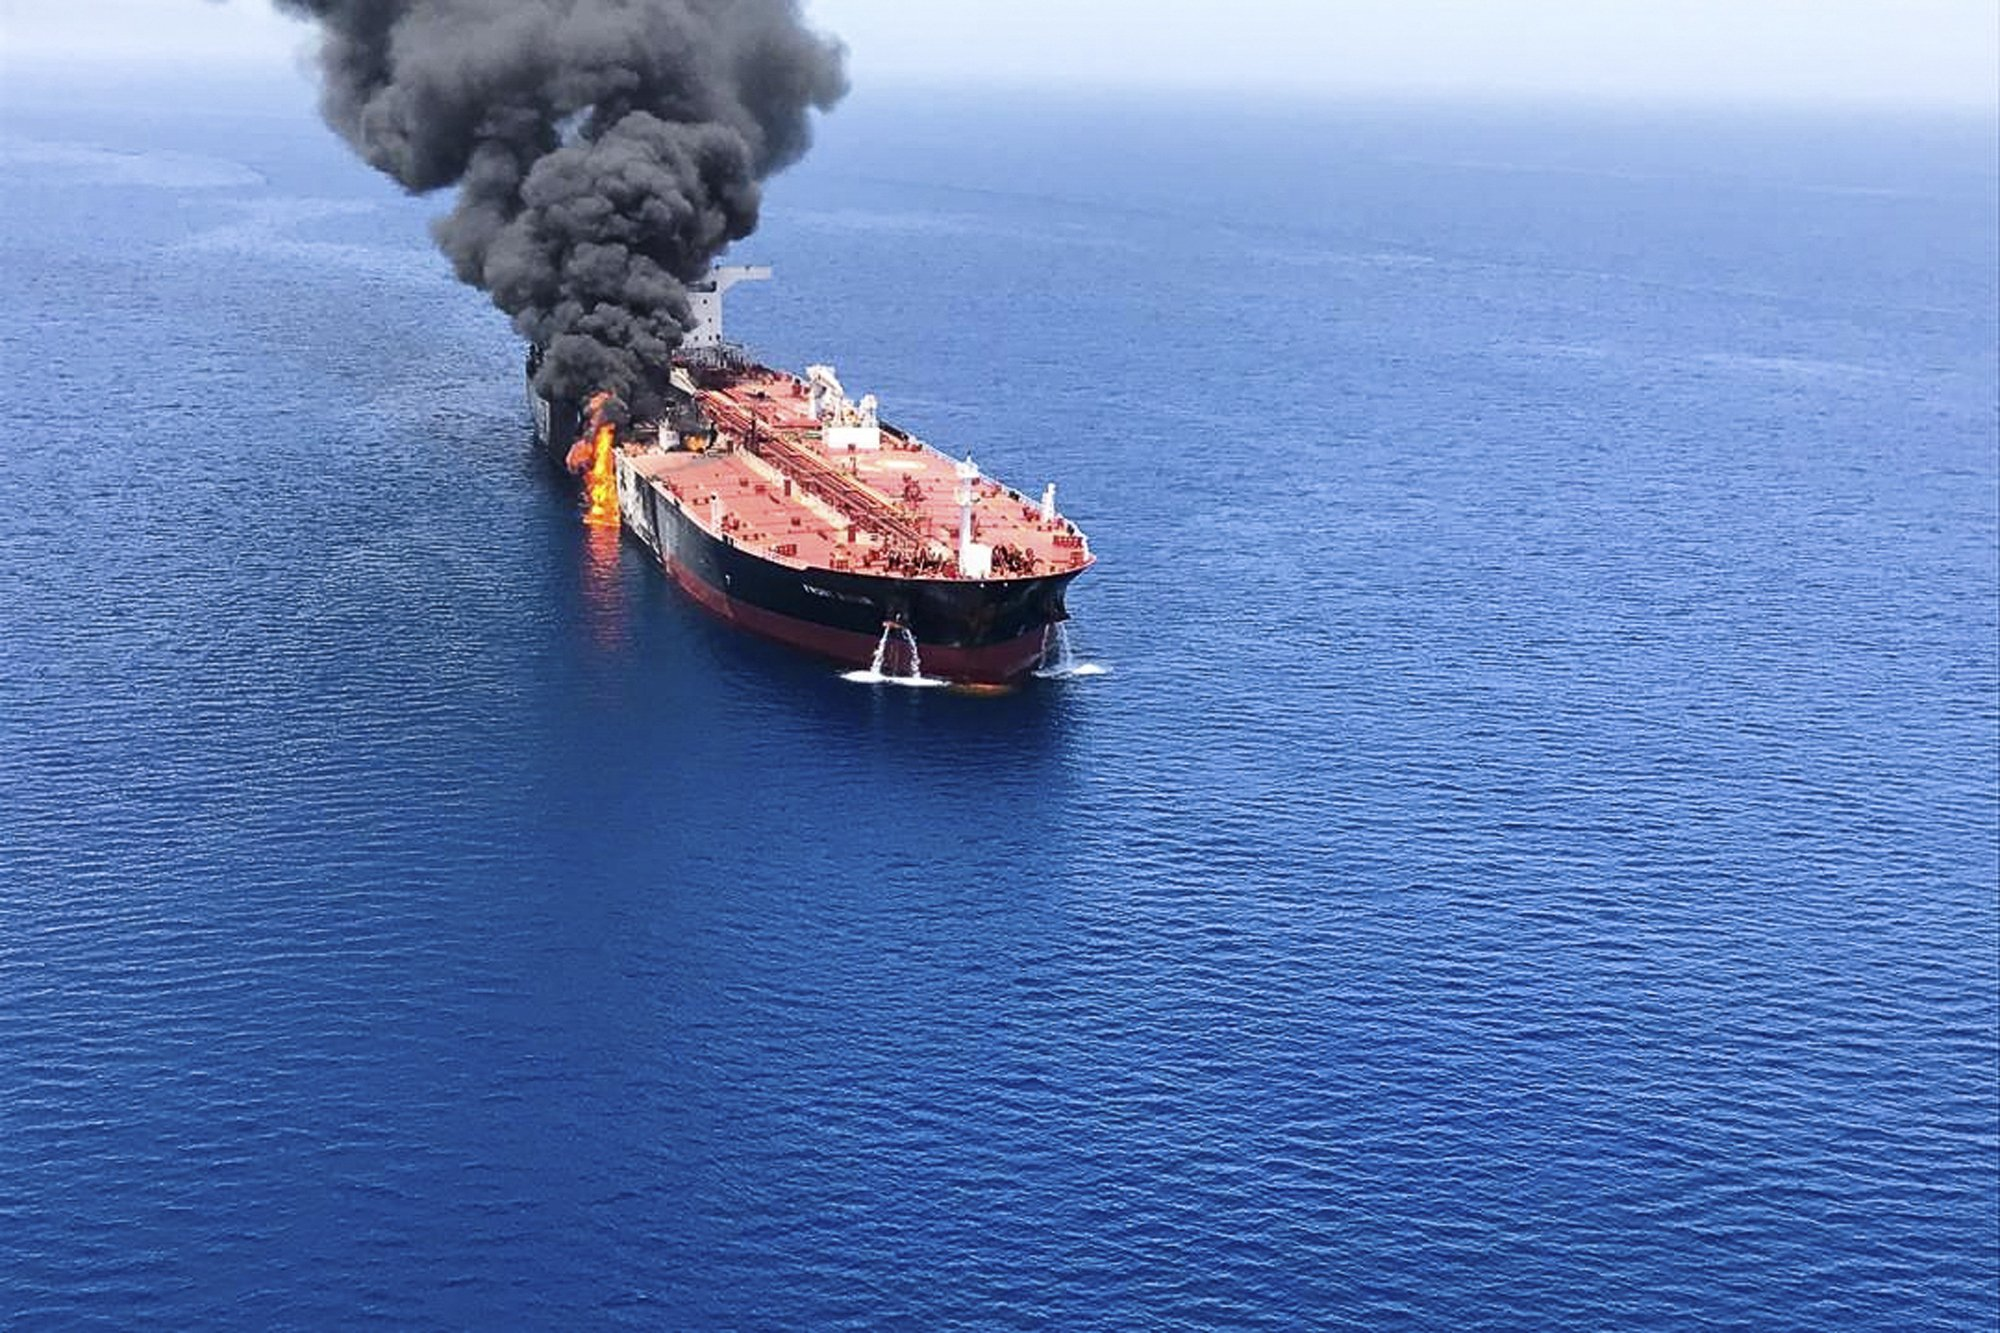 US blames Iran for attacks on oil tankers in Sea of Oman